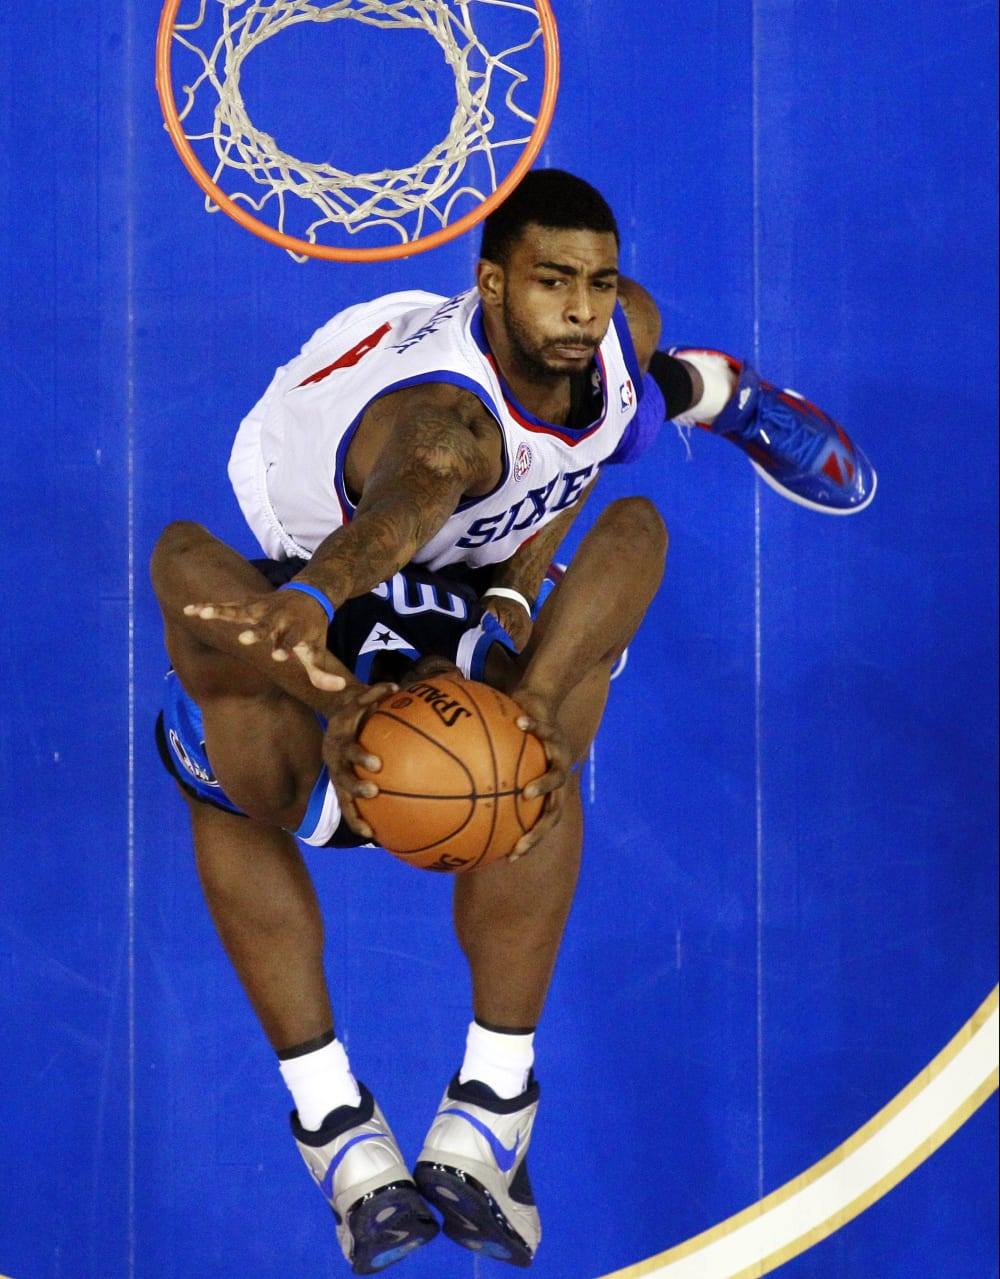 Dallas Mavericks' Elton Brand, bottom, goes up for a shot as Philadelphia 76ers' Dorell Wright defends in the first half of an NBA basketball game, Tuesday, Nov. 27, 2012, in Philadelphia. Philadelphia won 100-98. (AP Photo/Matt Slocum)